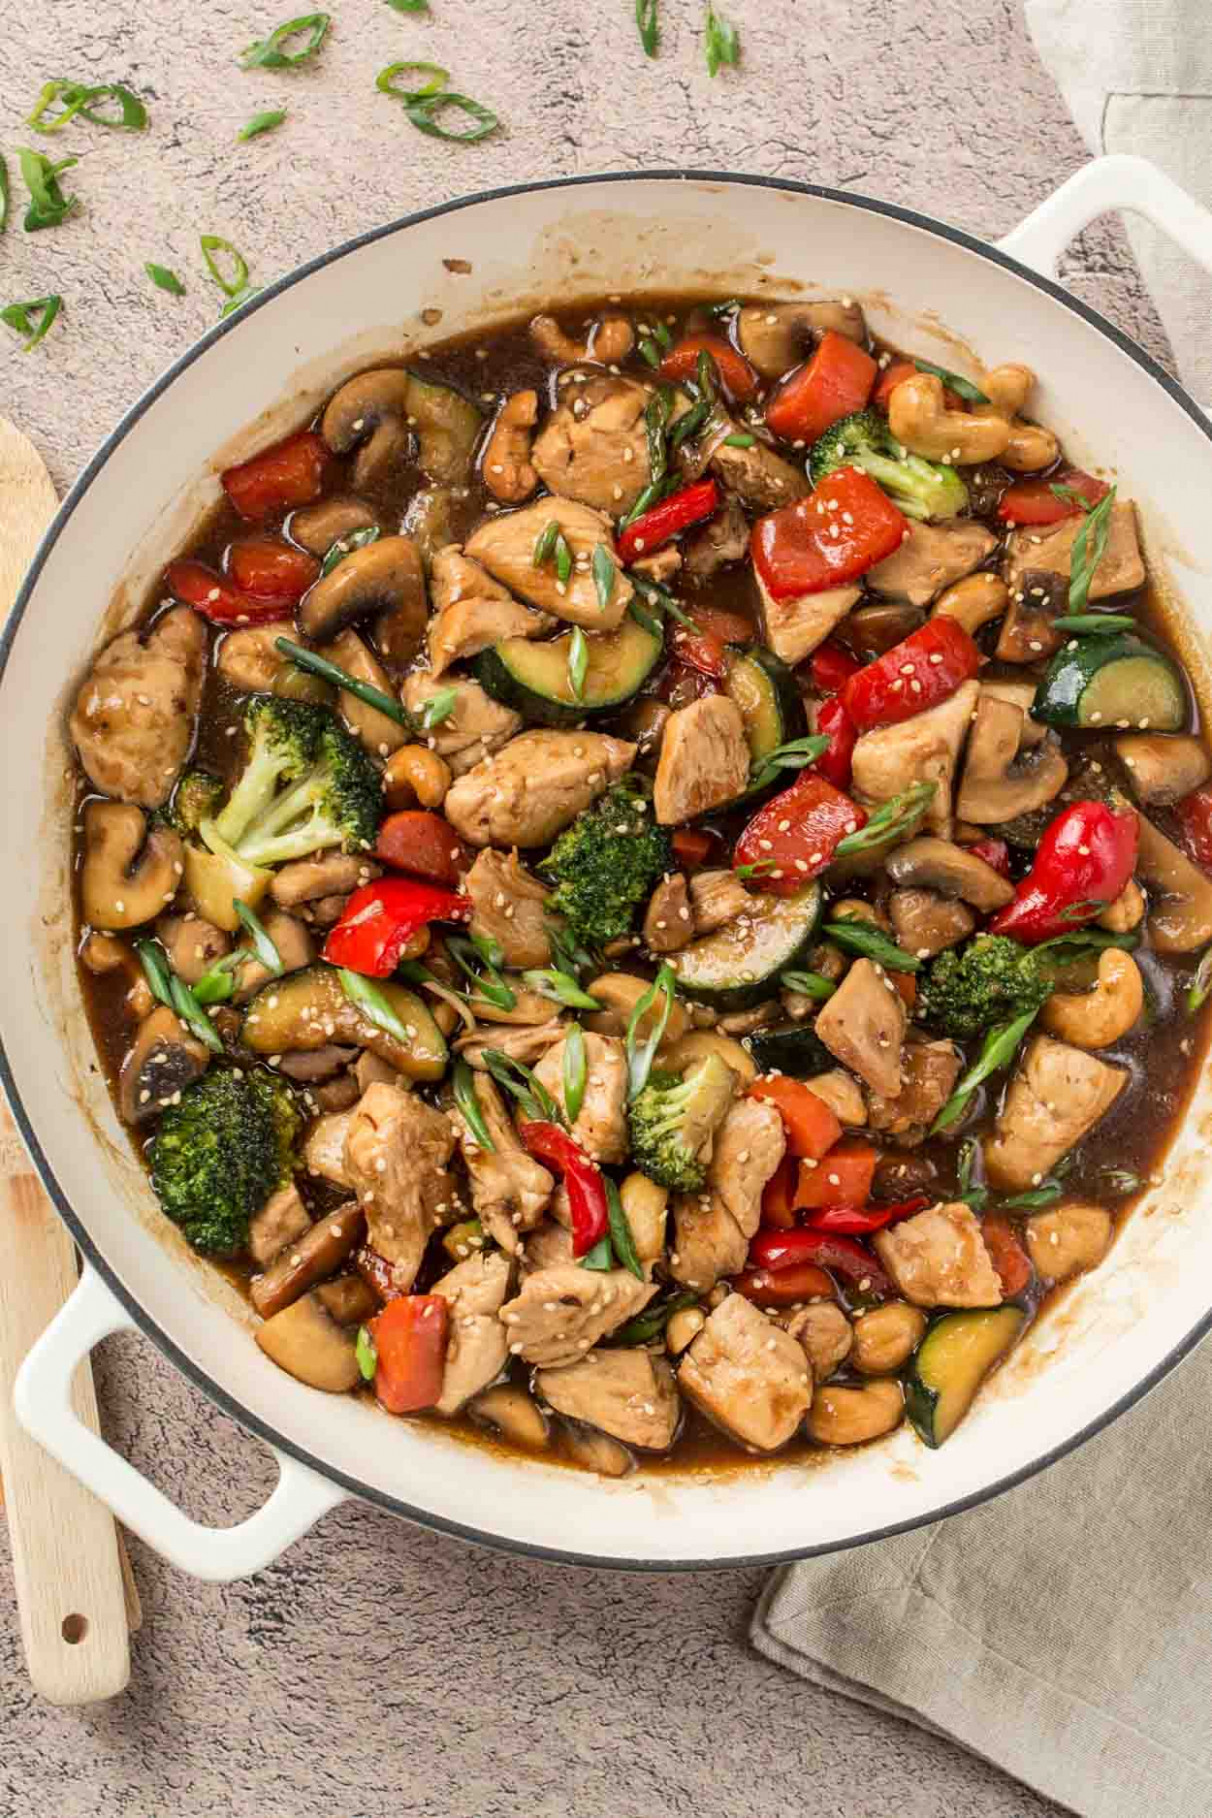 Easy Chicken Stir Fry Recipe - recipes easy chicken